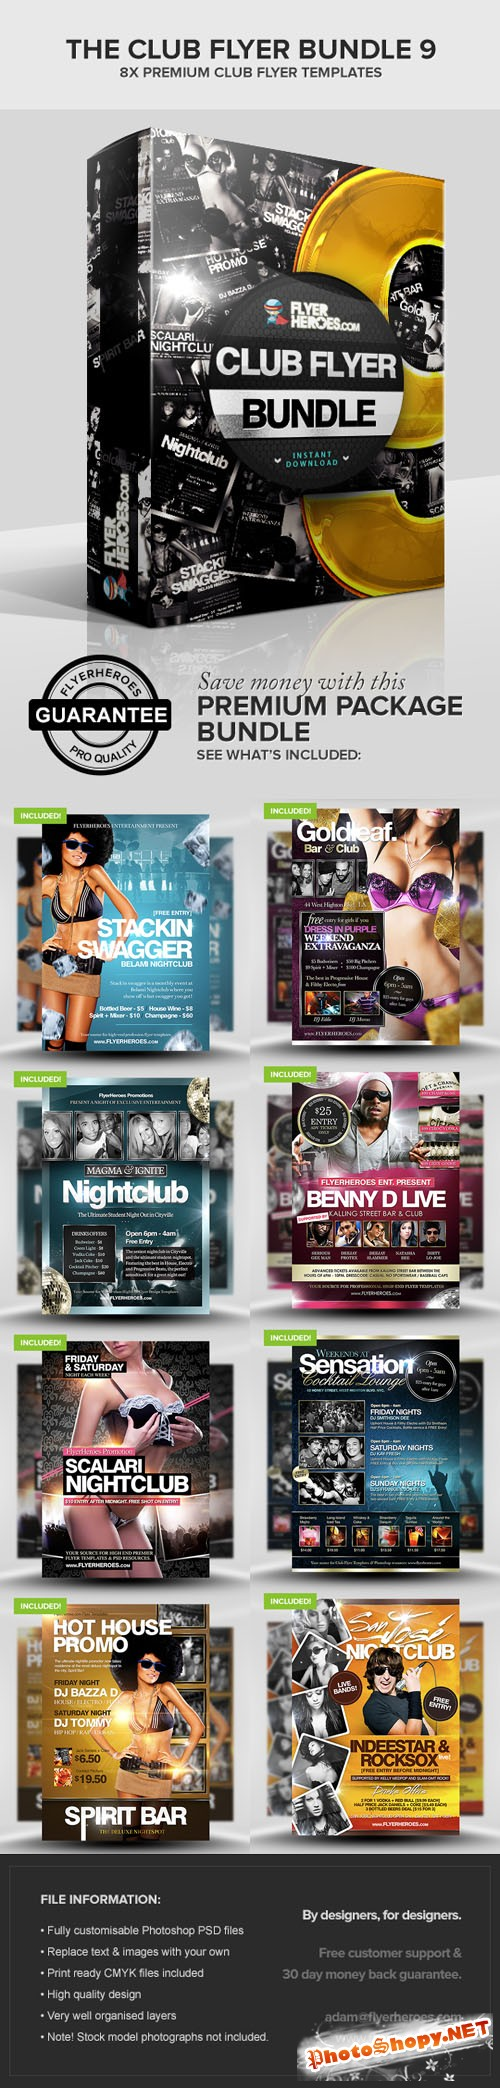 The Club Flyer Bundle 9